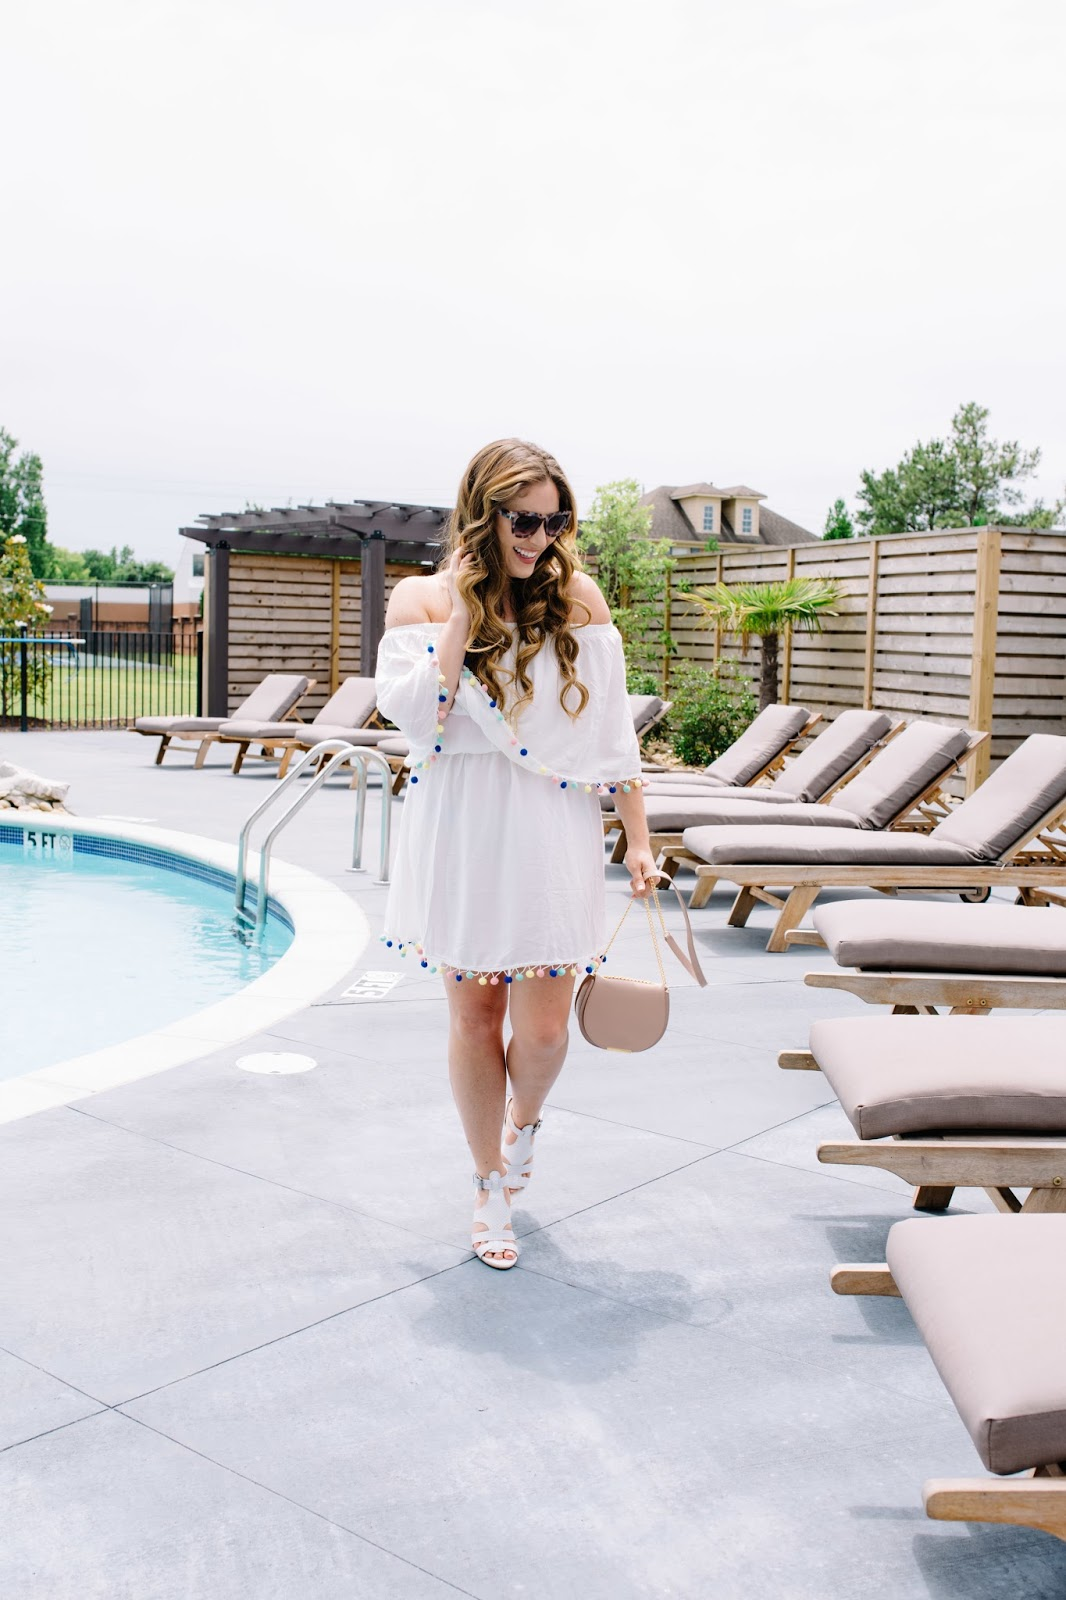 Trend Spin Linkup - Affordable Fashion by fashion blogger Laura of Walking in Memphis in High Heels